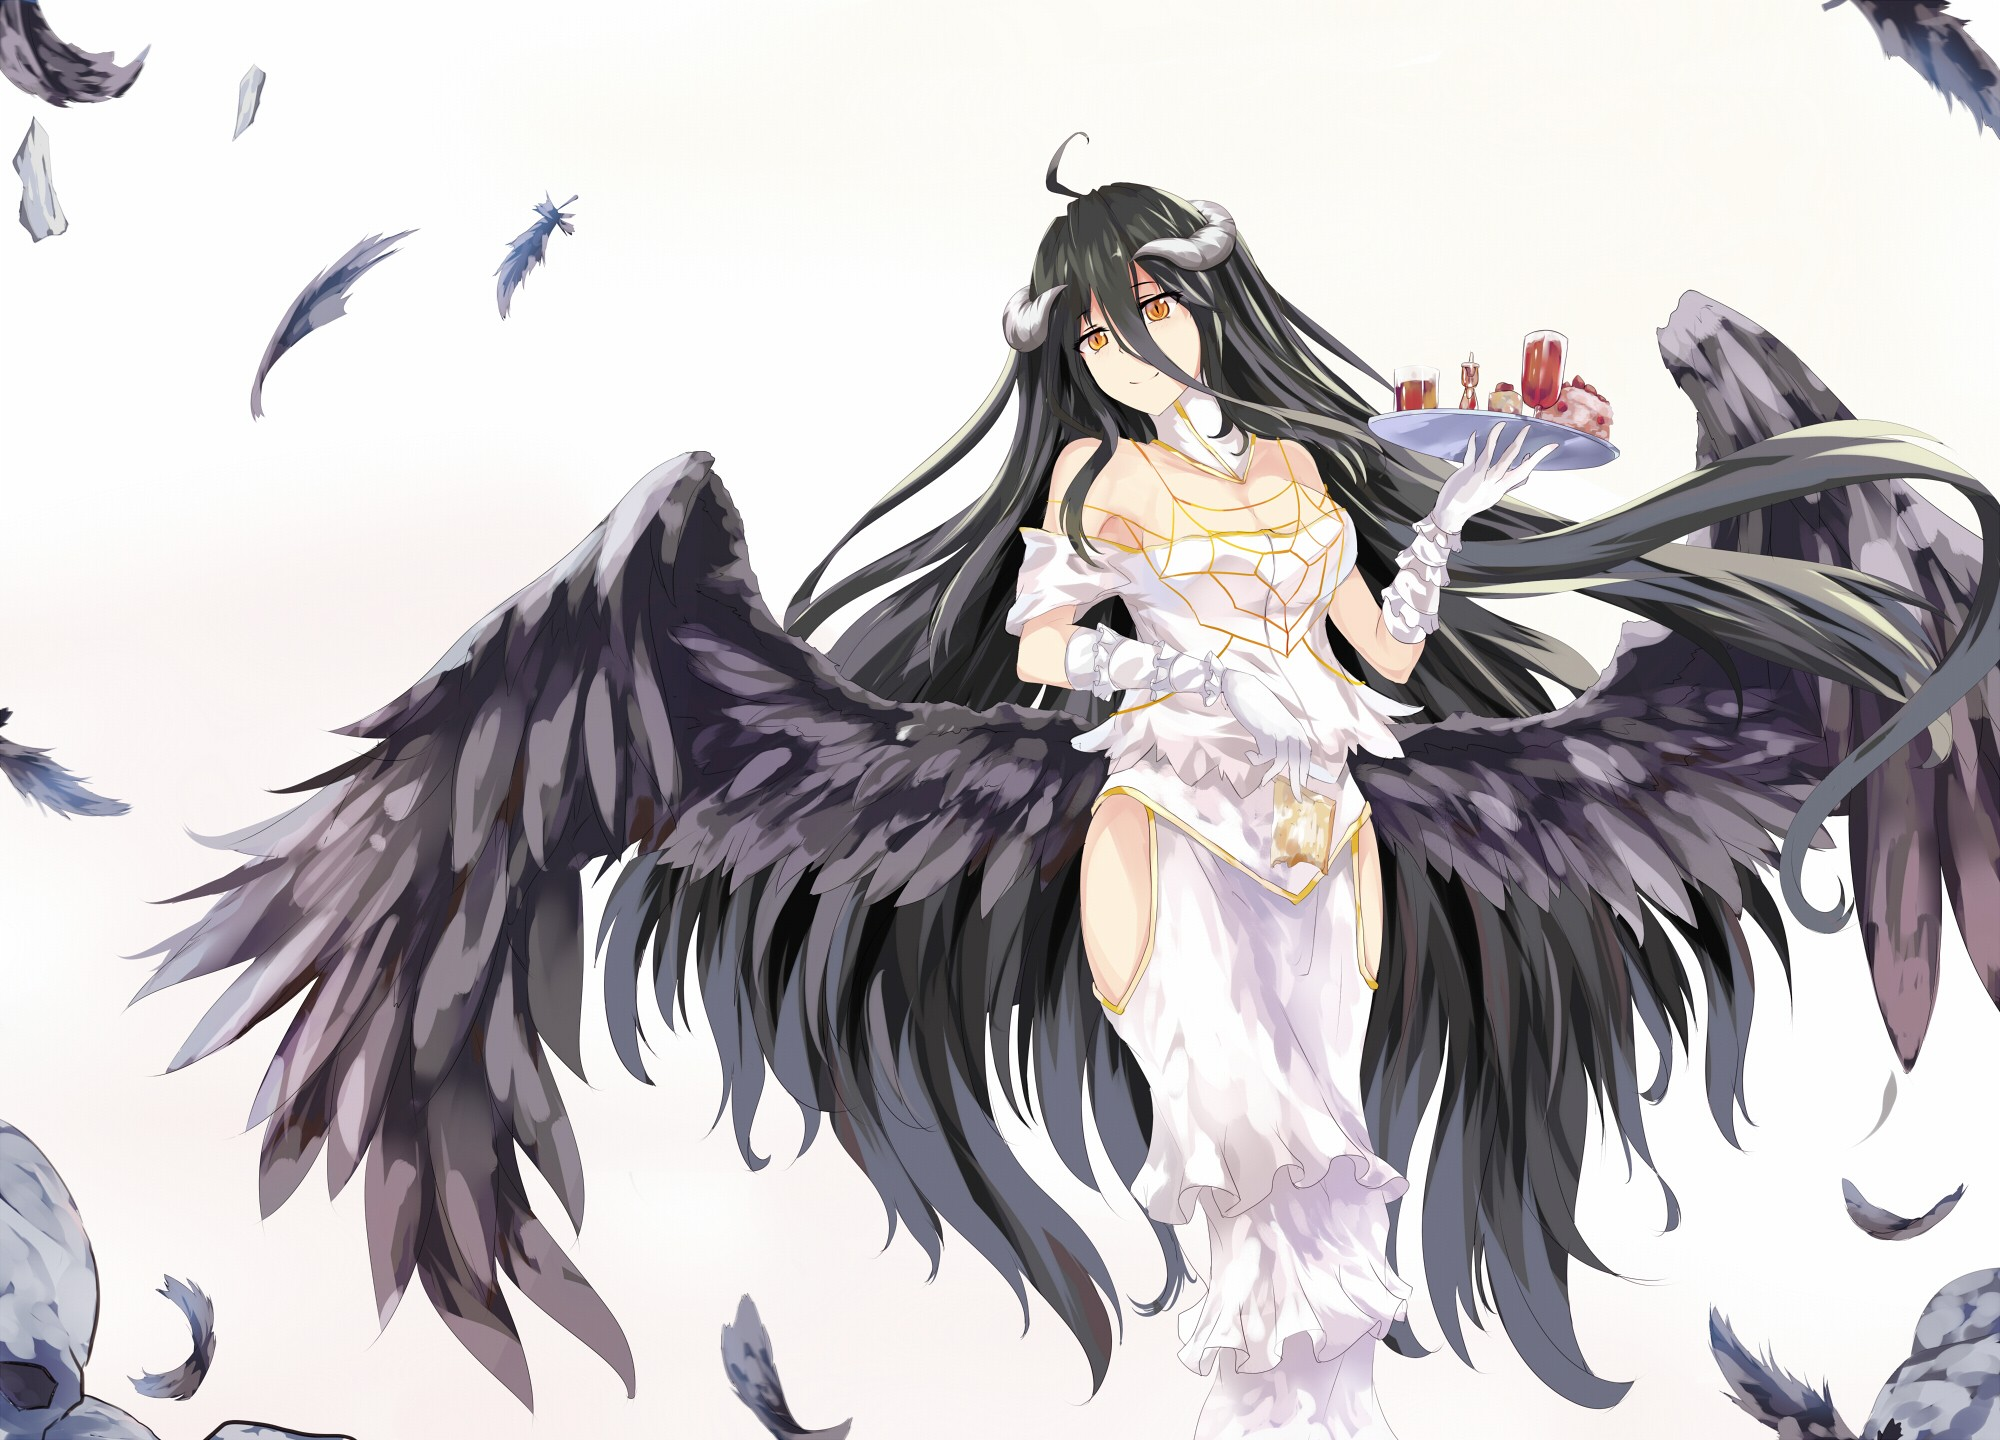 Girl Wallpaper Hd For Mobile Free Download Overlord Anime Wallpaper 183 ① Download Free Stunning